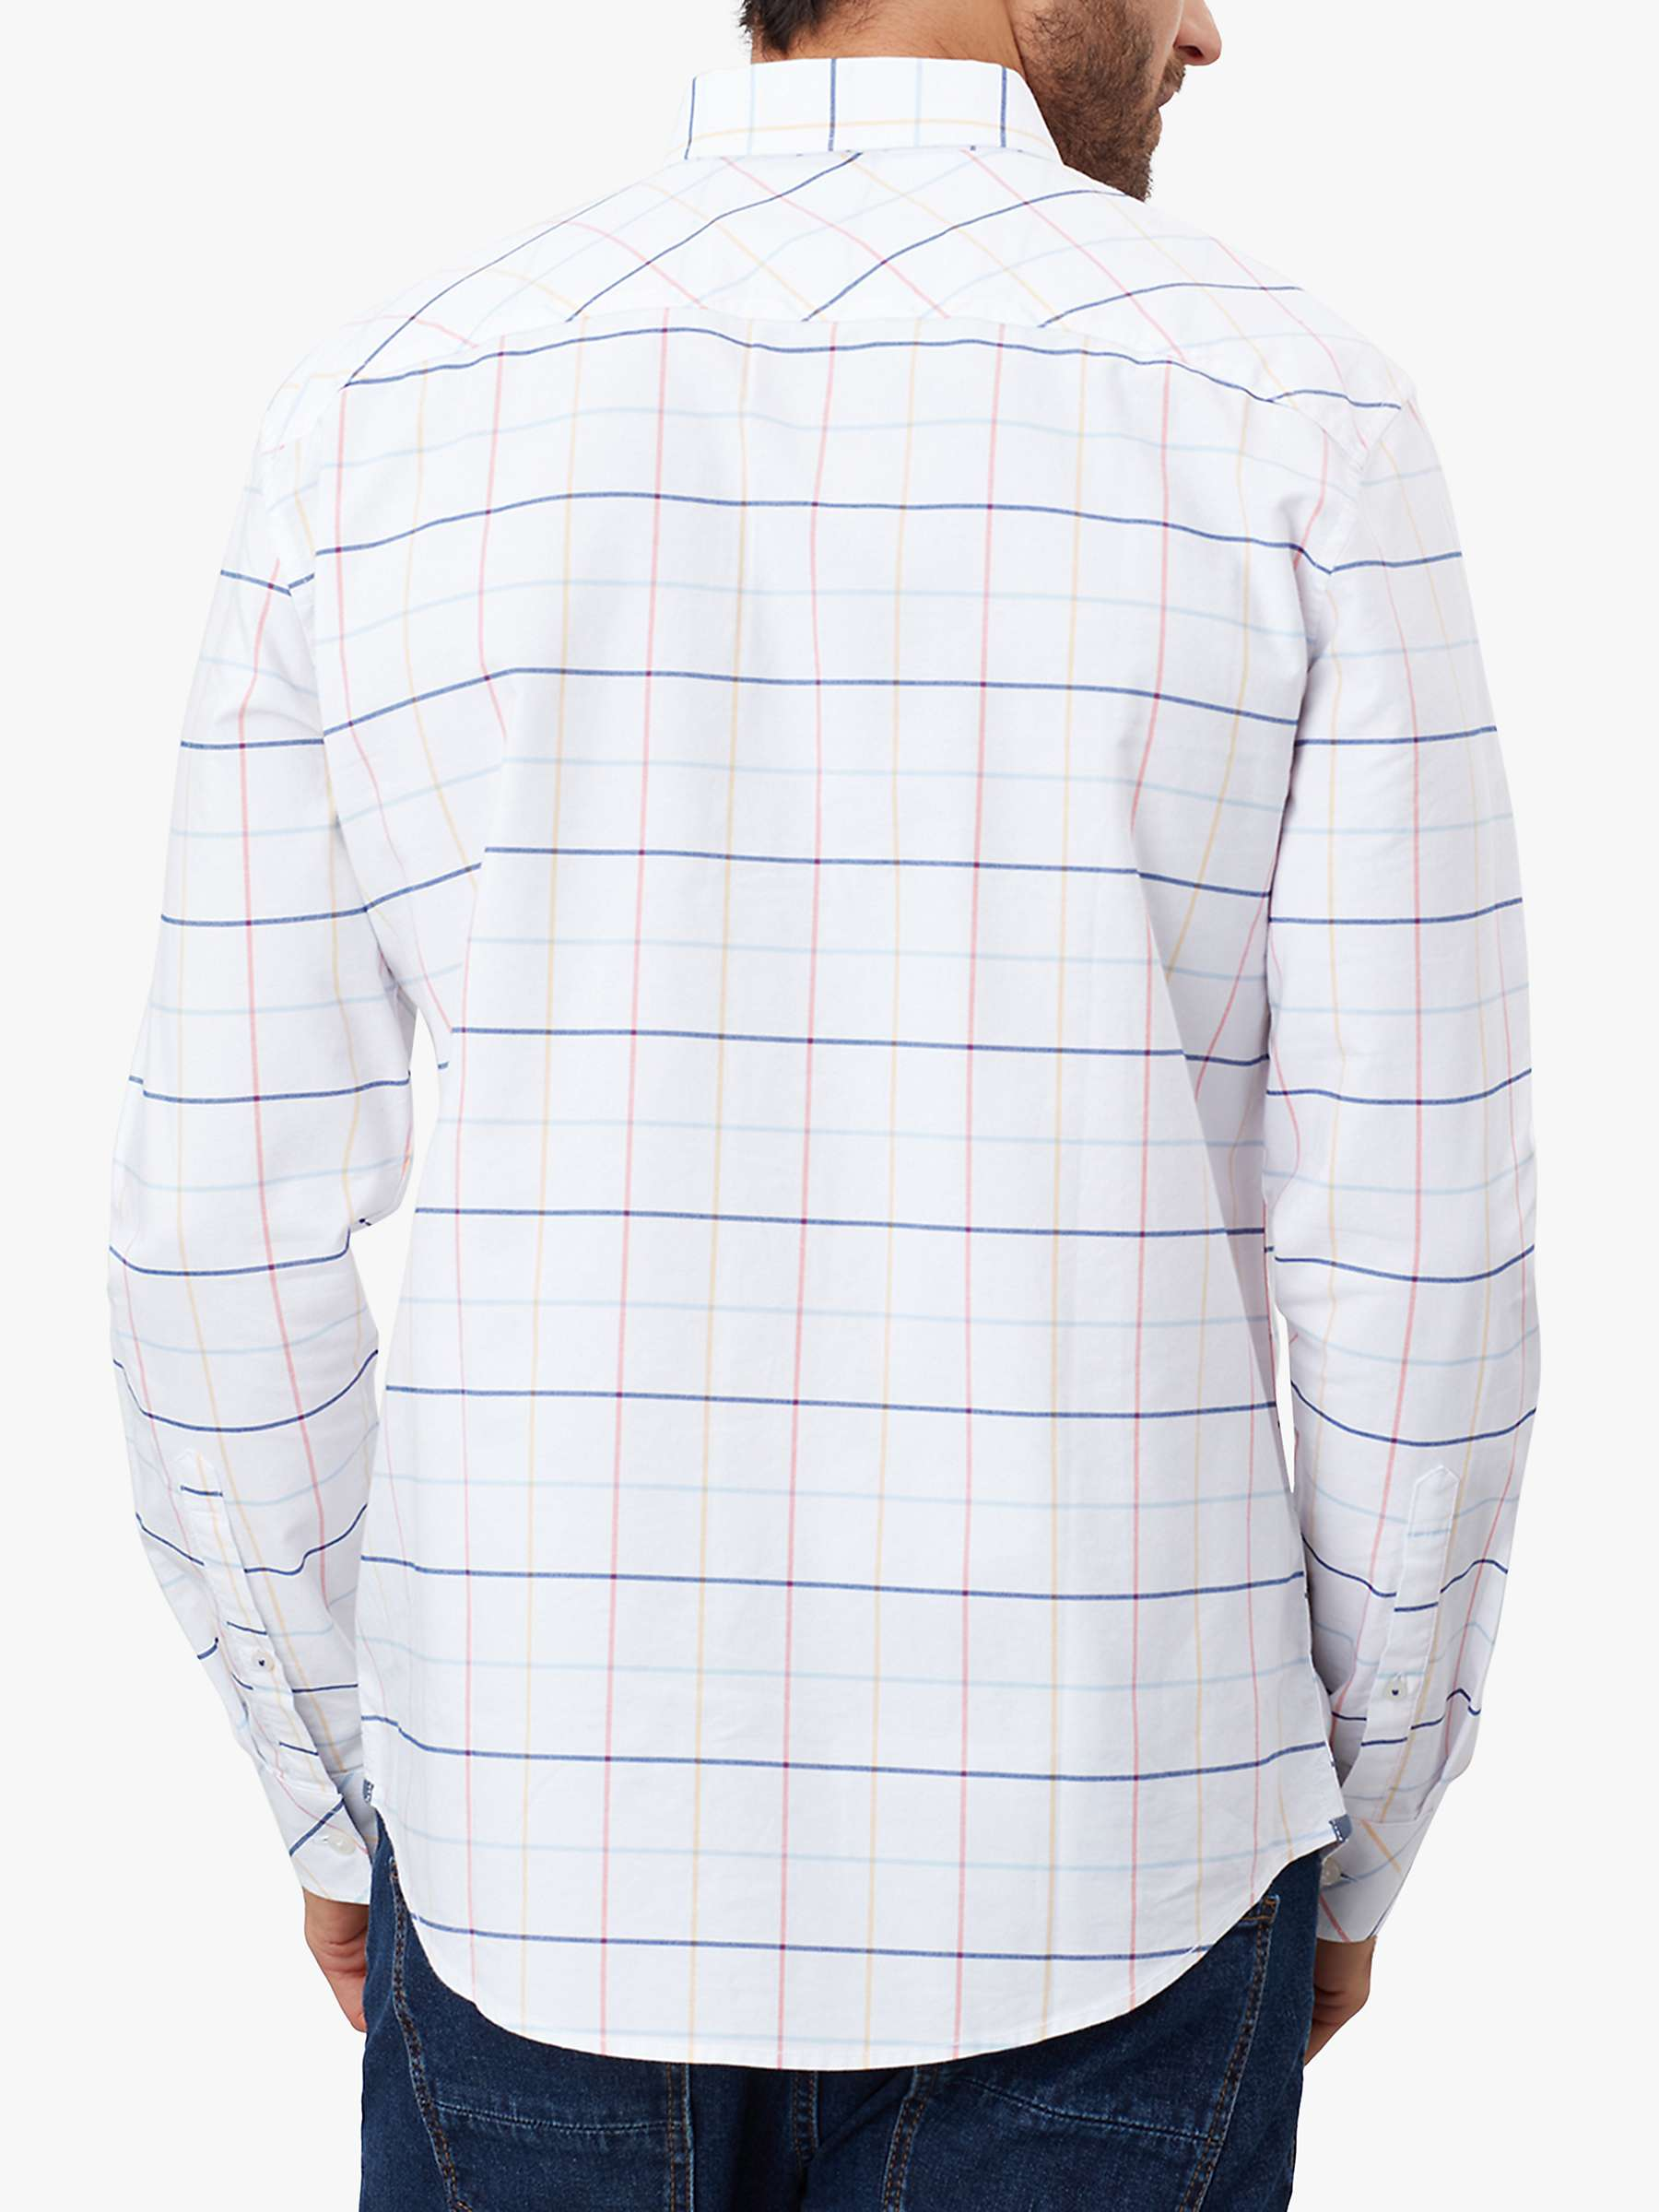 Mens Joules Welford Shirt in White Blue Check all sizes M to 3XL